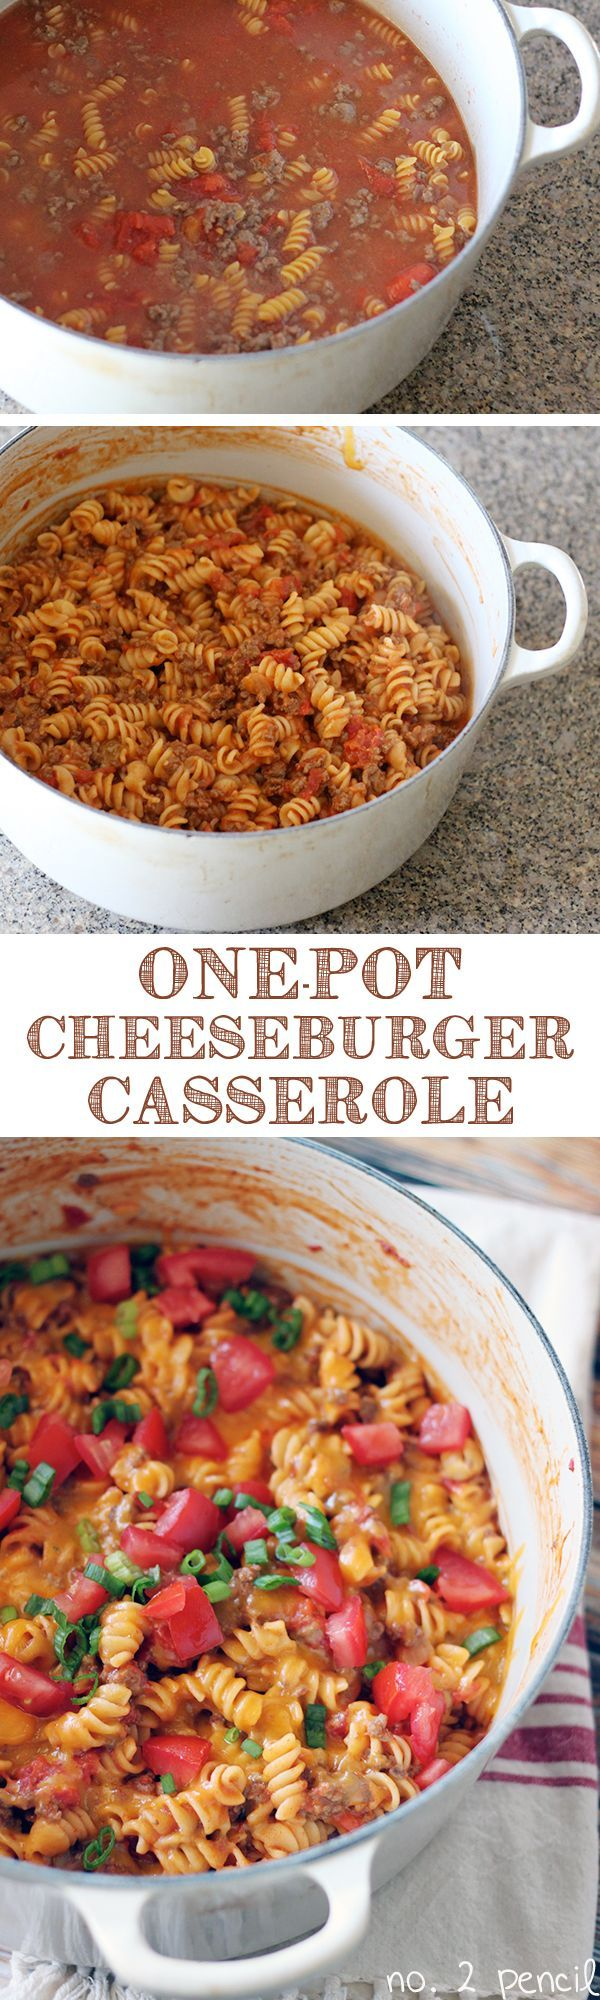 One-pot cheeseburger casserole - could also make with veggies as a healthier vegetarian option!